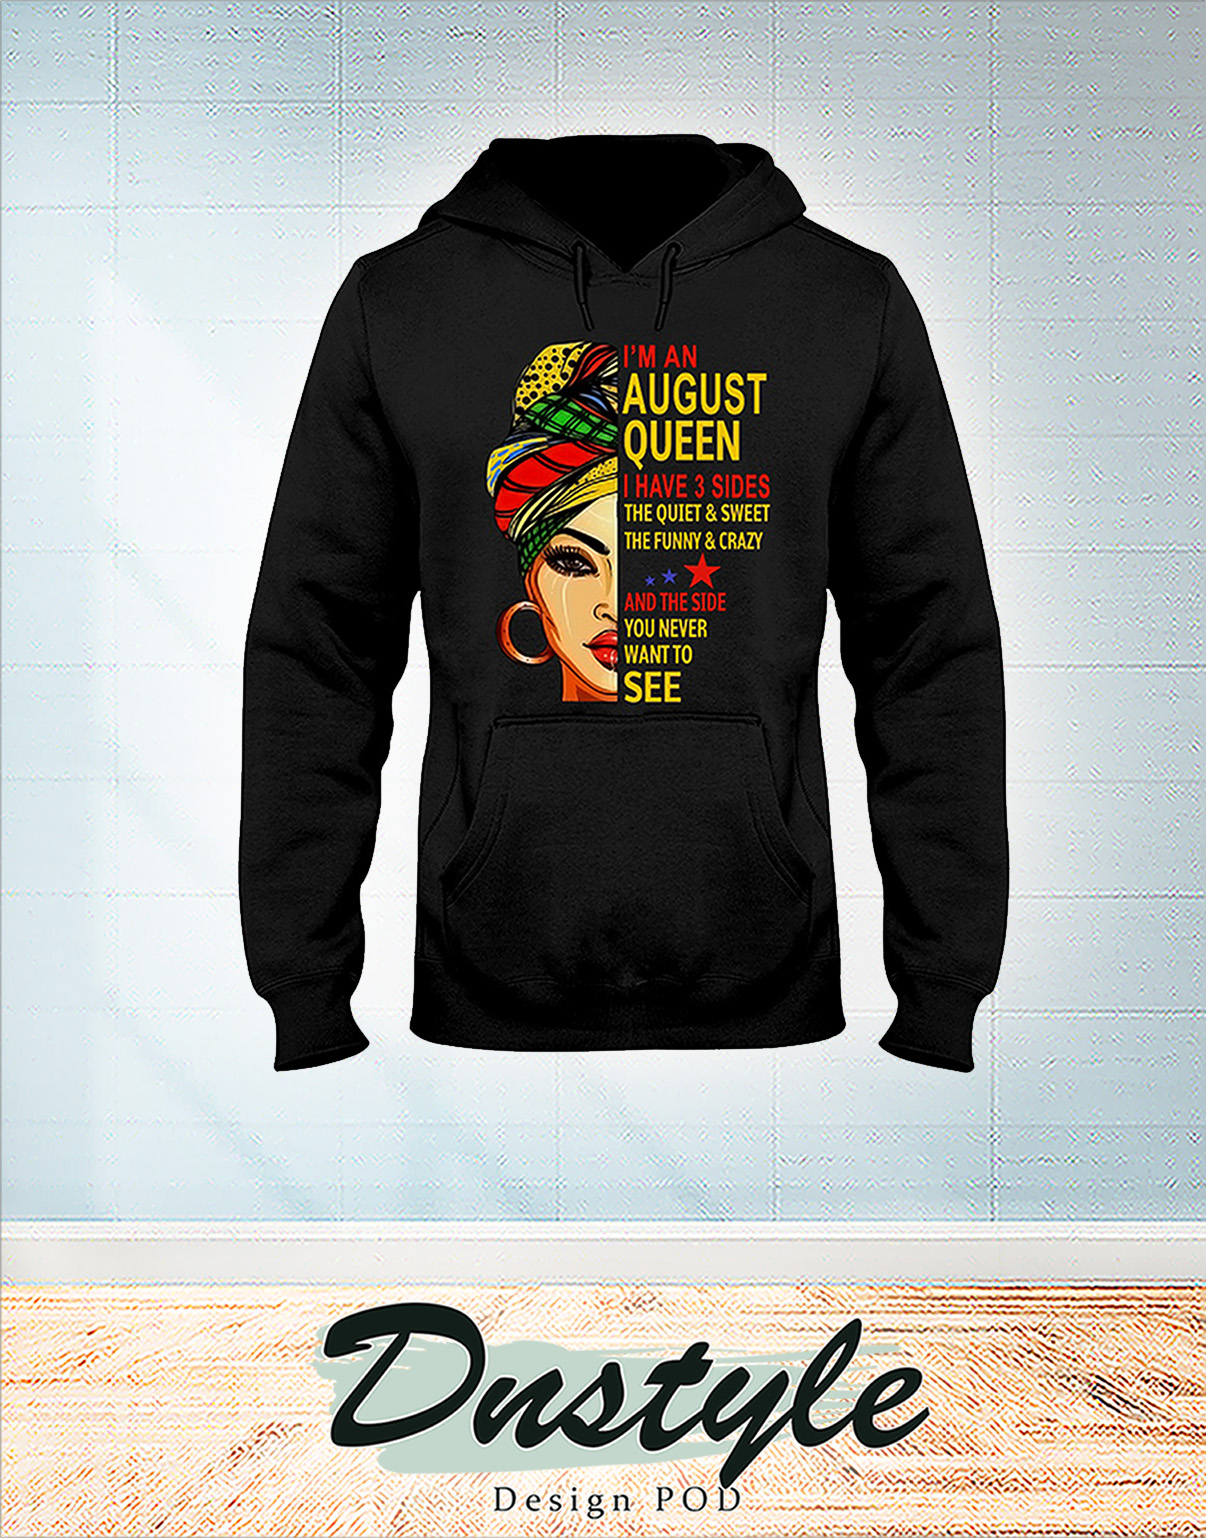 African I'm an august queen I have 3 sides hoodie